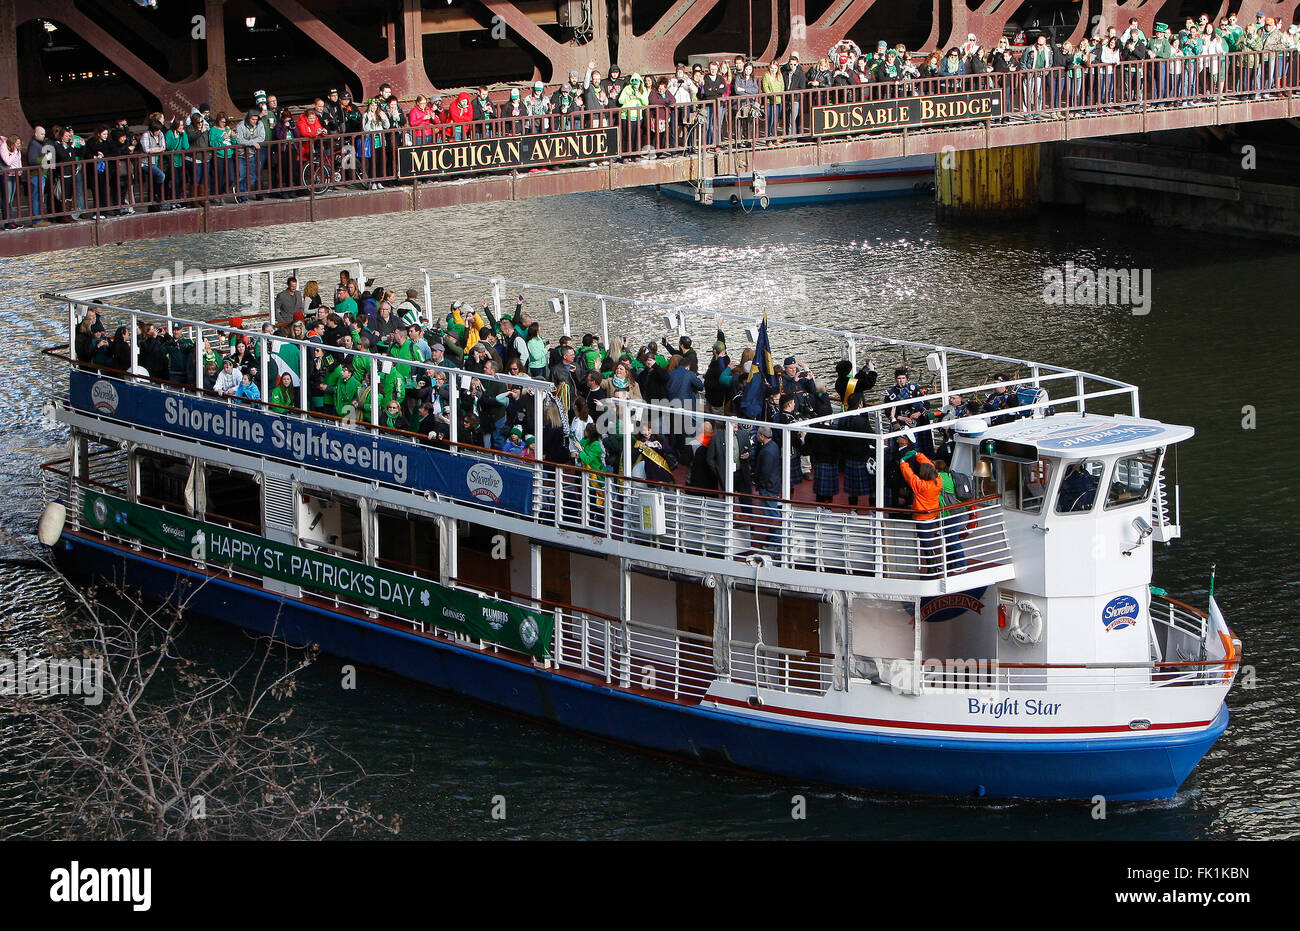 A tour boat sails under the DuSable Bridge across Michigan Avenue on the Chicago River during the St. Patrick's - Stock Image